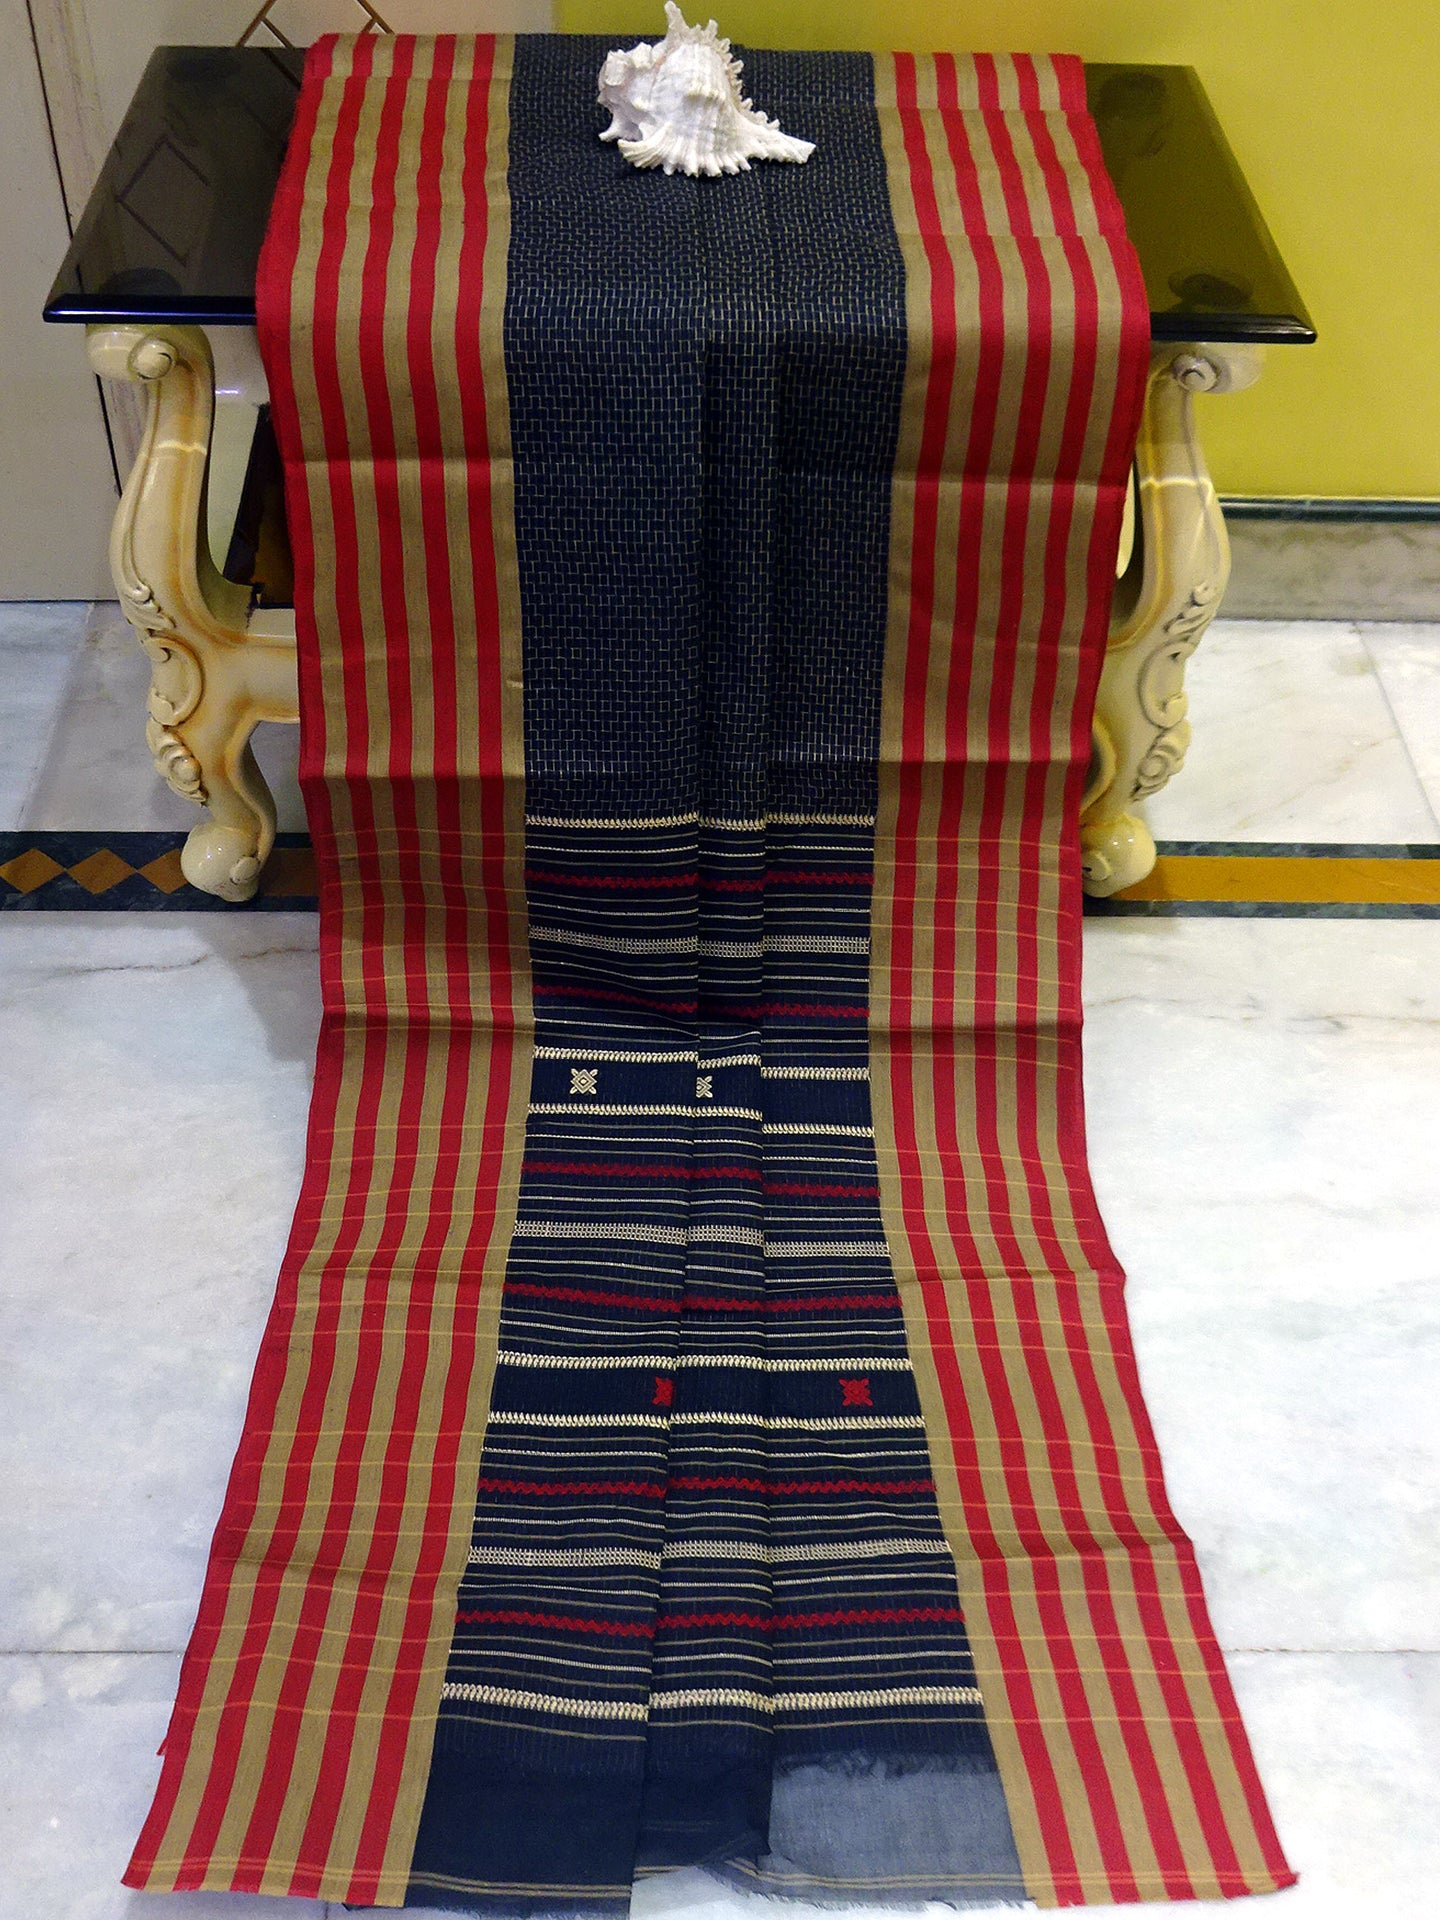 Premium Quality Bengal Handloom Cotton Saree in Black, Beige and Red